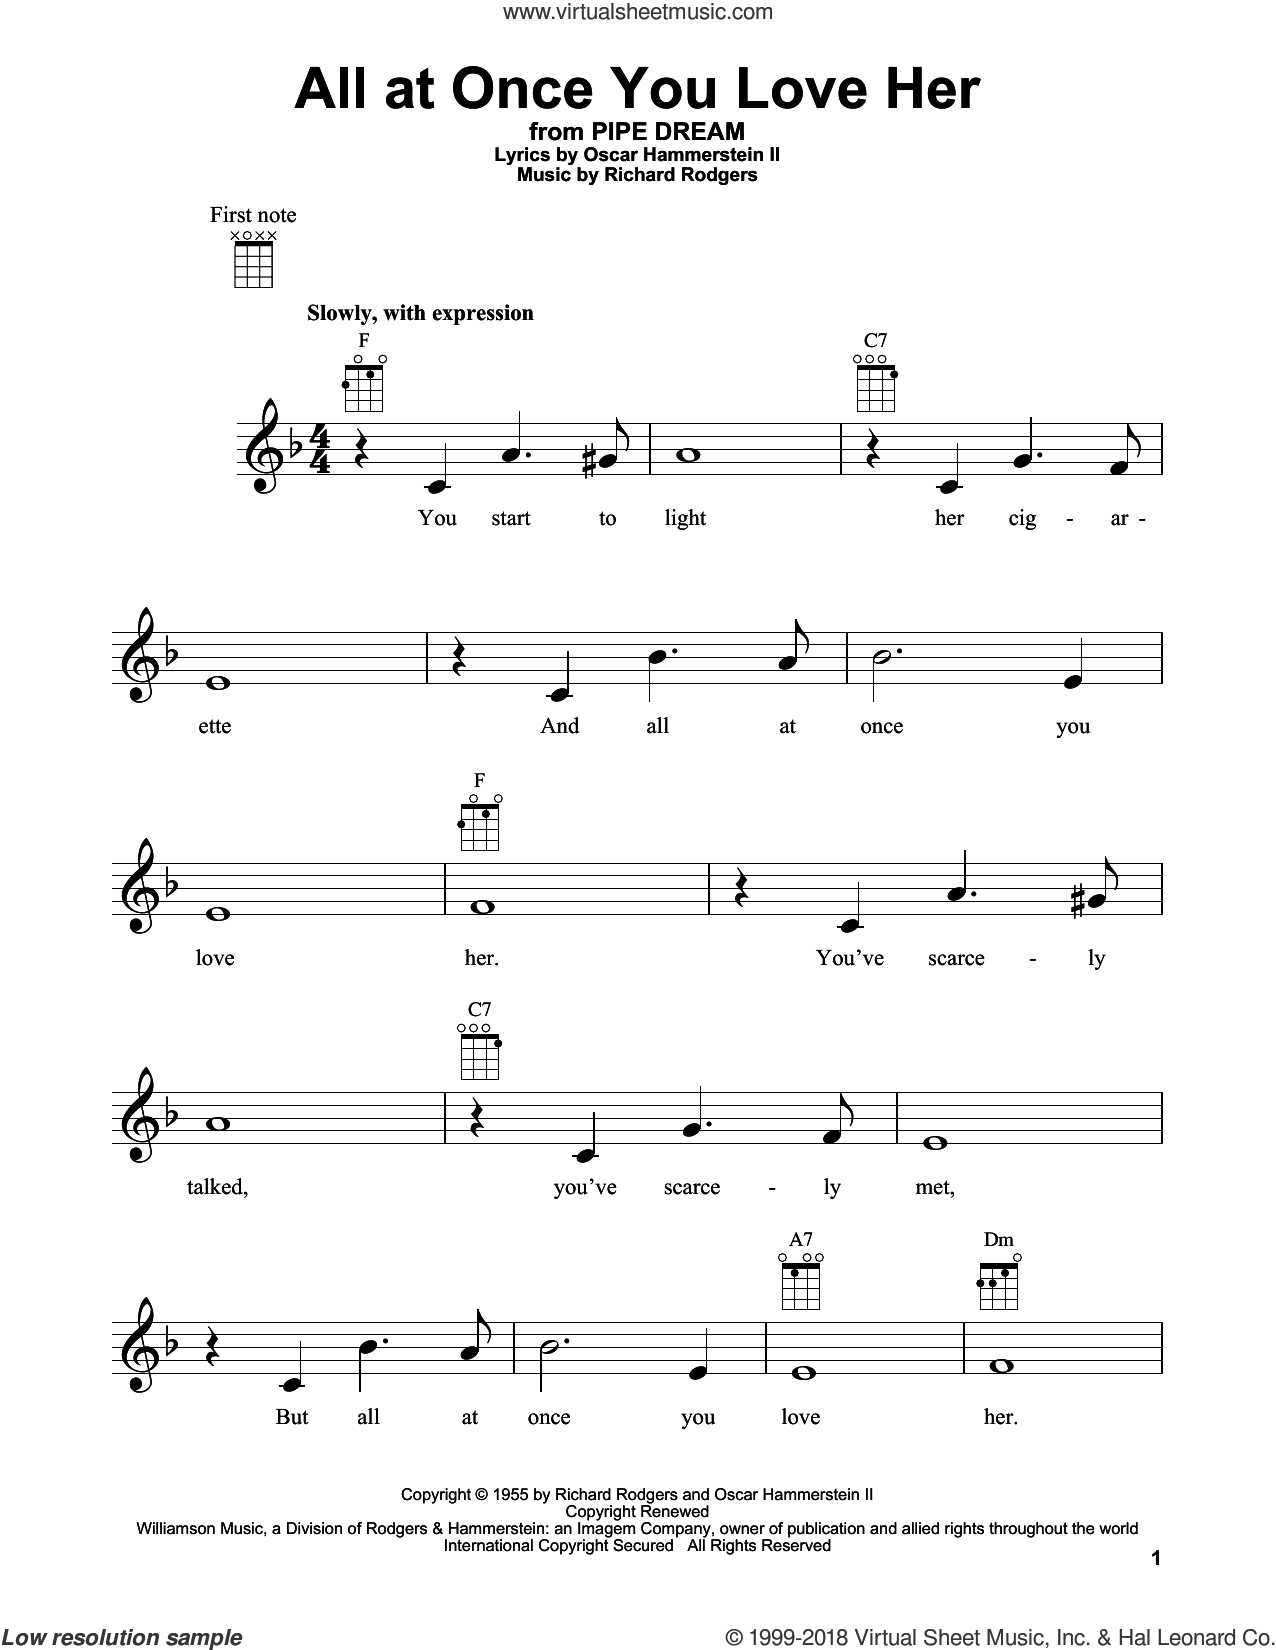 All At Once You Love Her sheet music for ukulele by Richard Rodgers